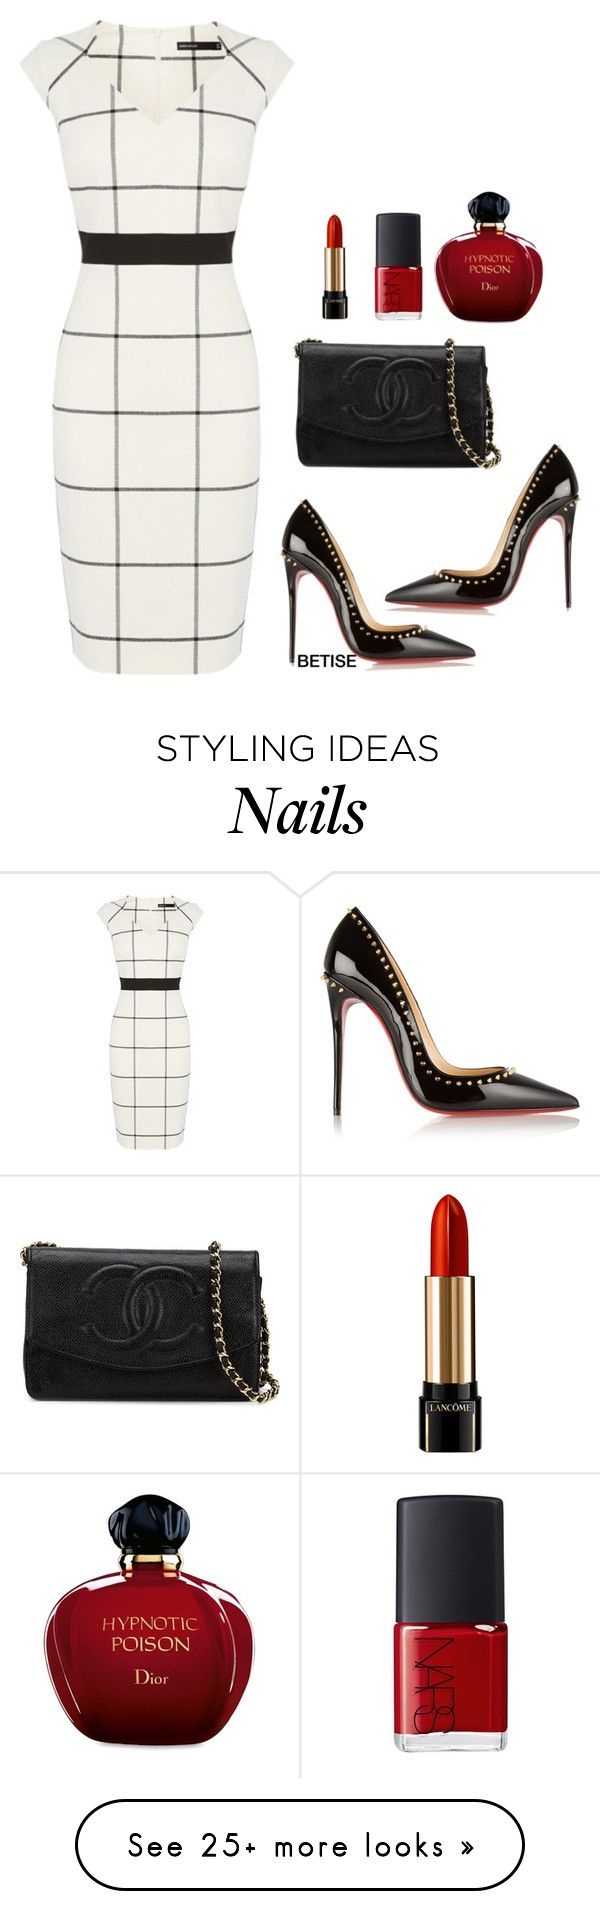 """""""WHITE & BLACK !!!"""" by betty-sanga on Polyvore featuring Karen Millen, Christian Louboutin, Chanel, Lancôme, NARS Cosmetics and Christian Dior"""